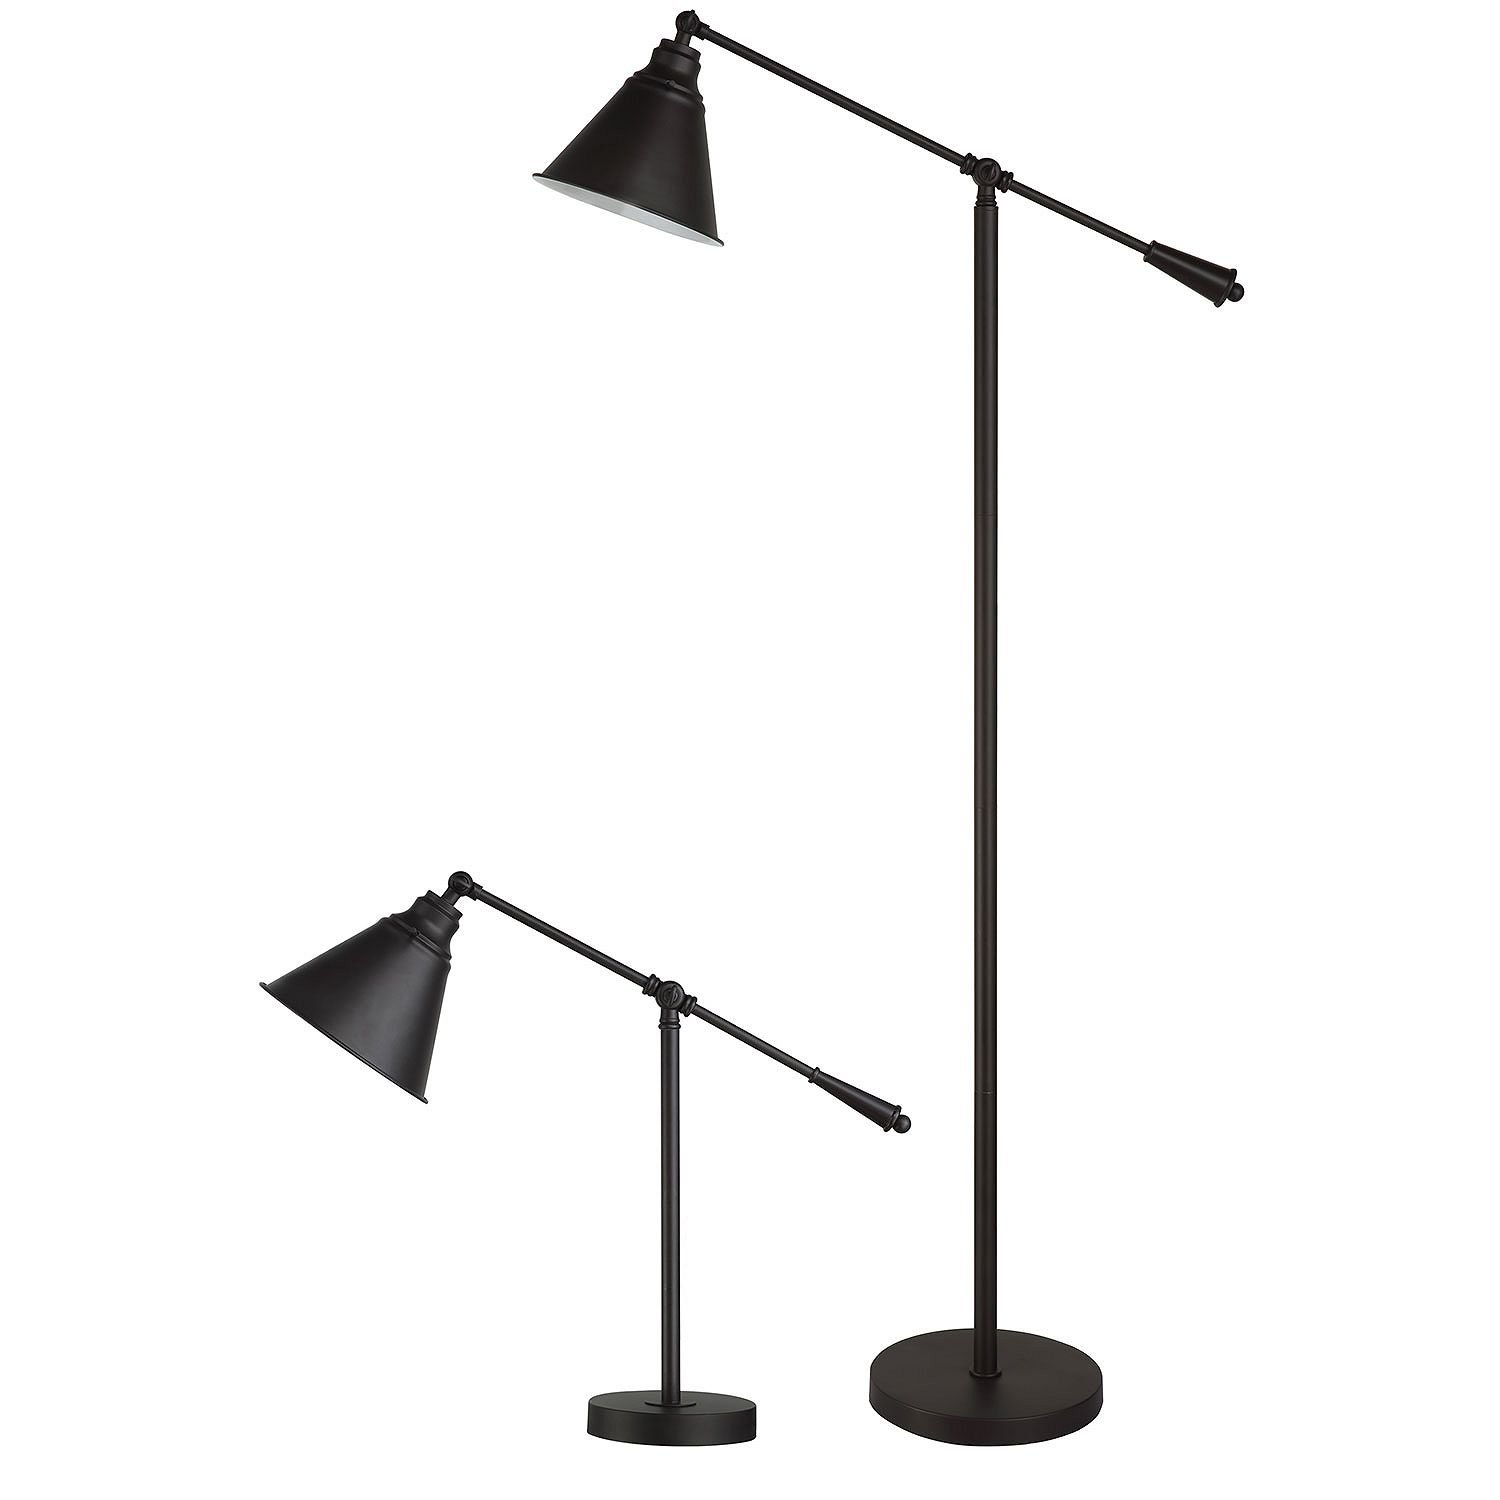 DSI Architect Lamps 2-Pack, Bronze